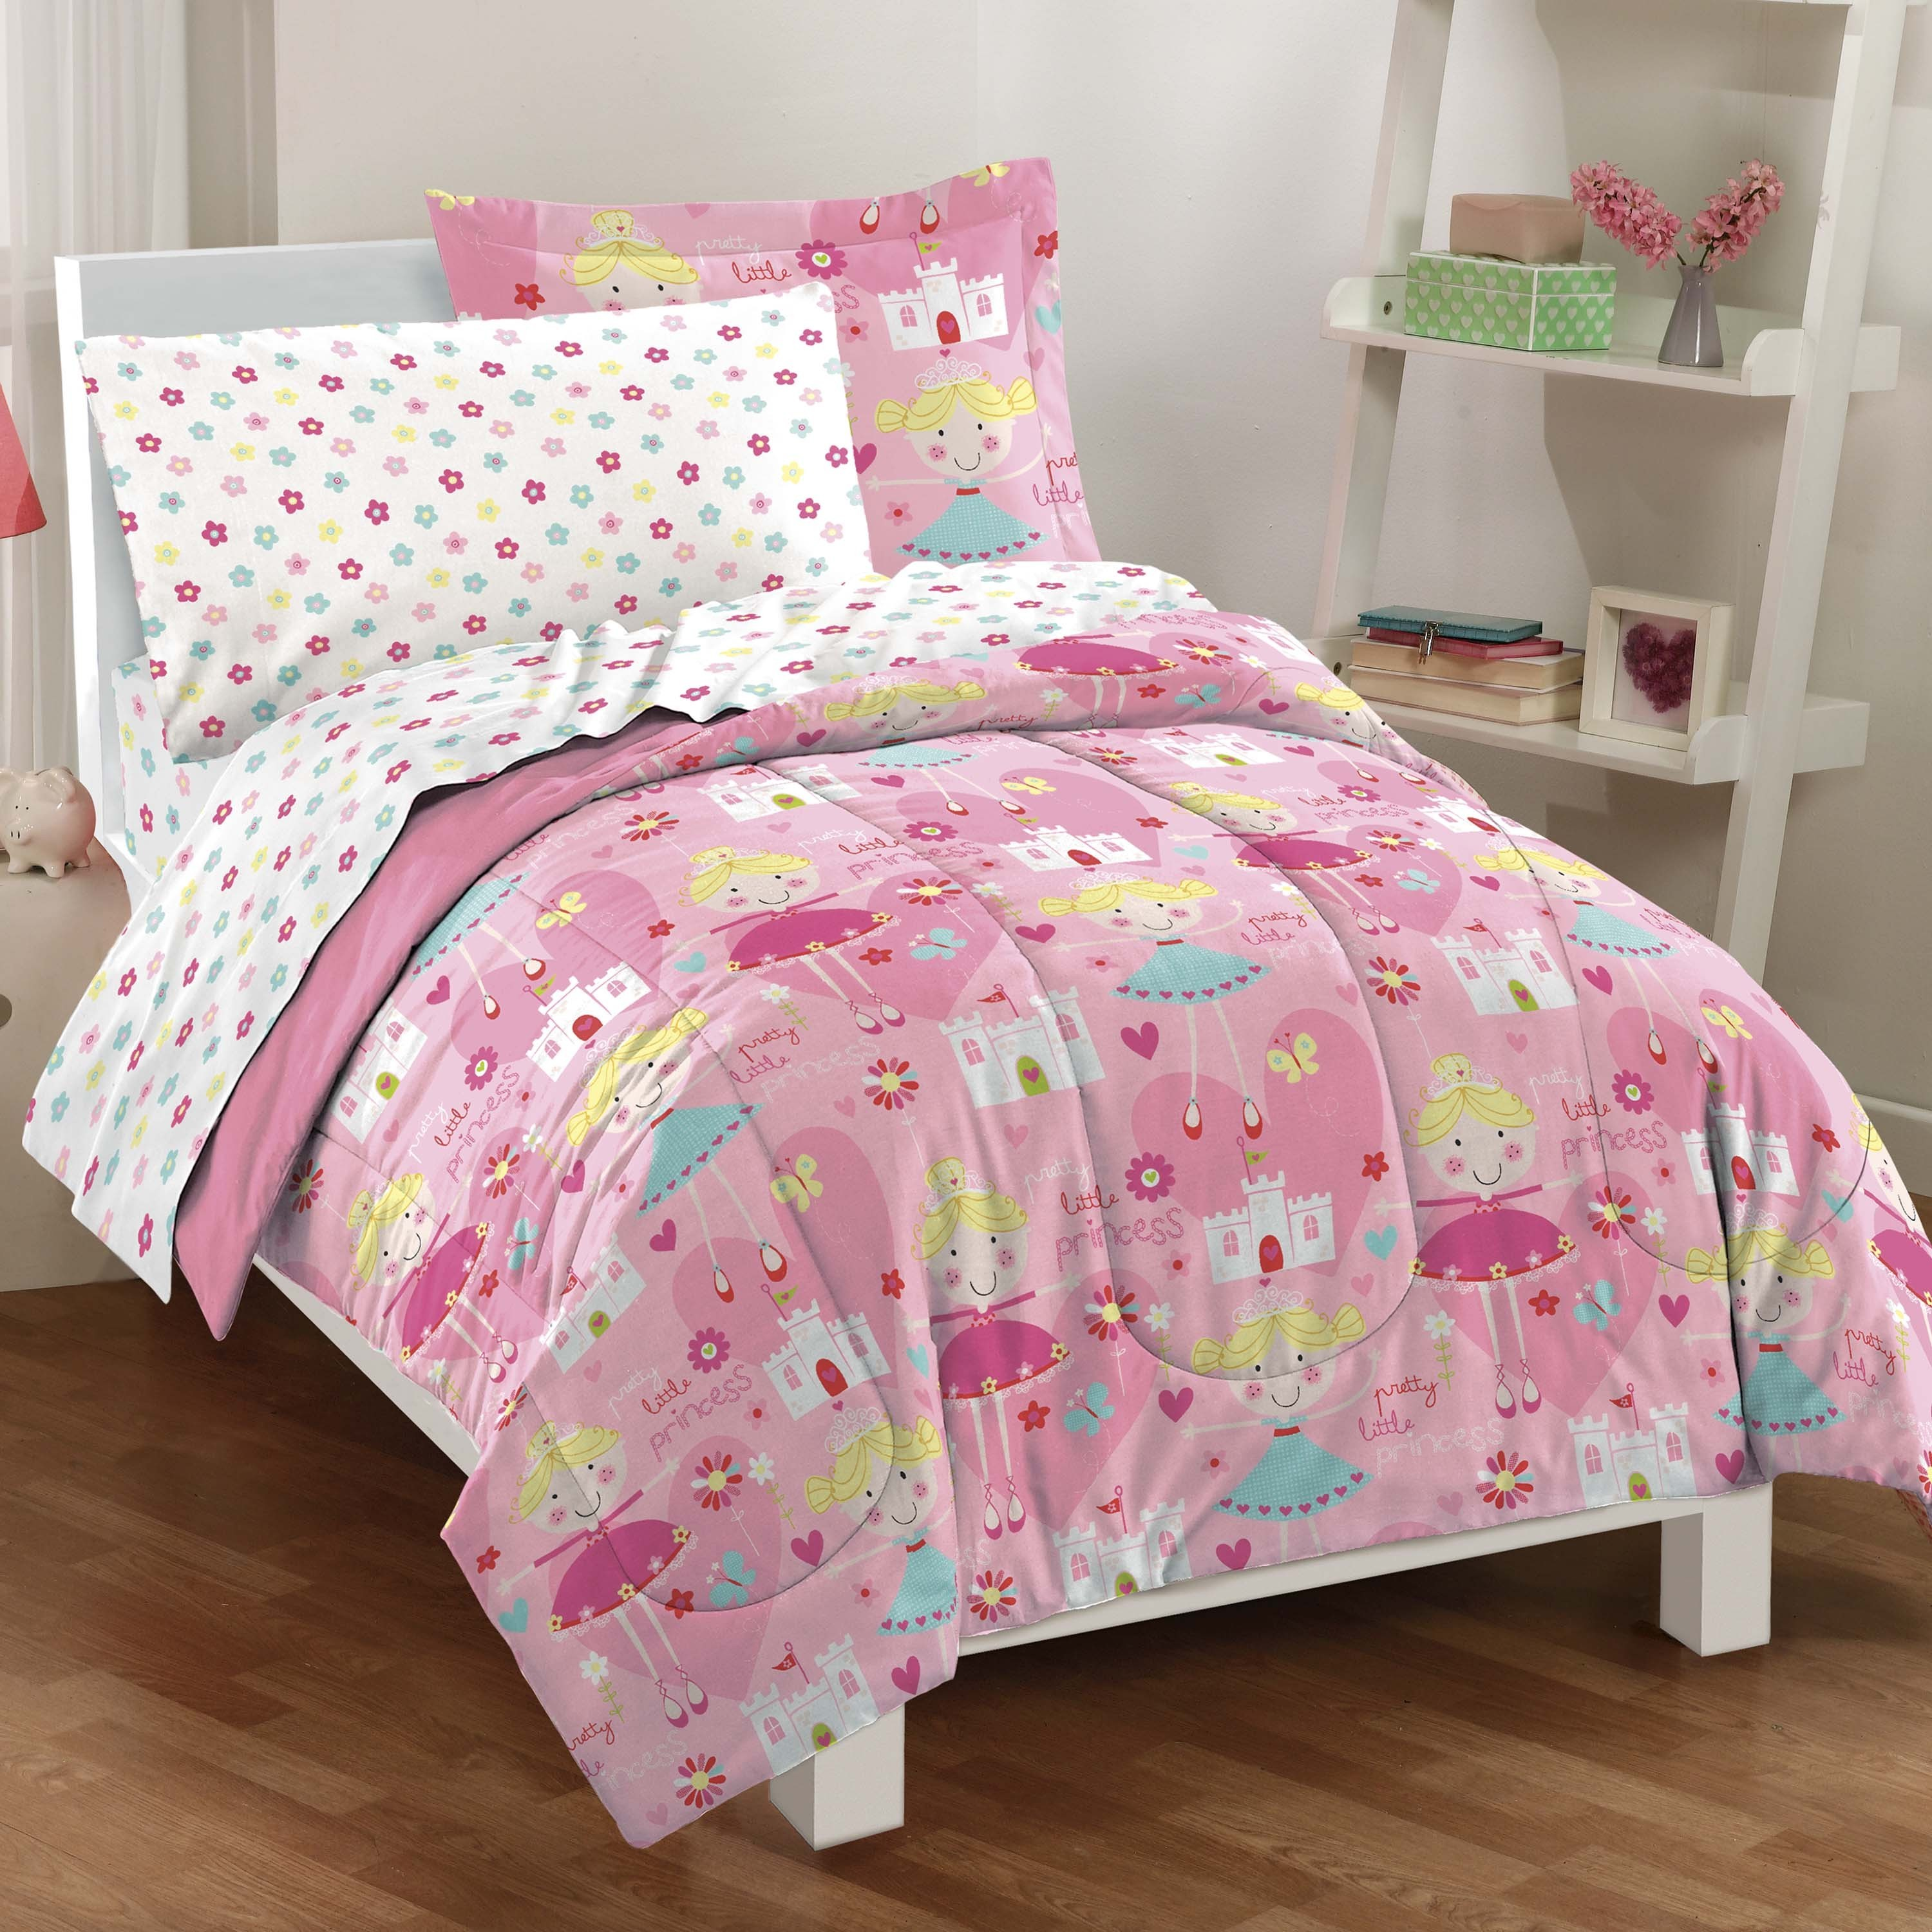 Dream Factory Pretty Princess 7 Piece Bed In A Bag With Sheet Set Free Shipping On Orders Over 45 8625231